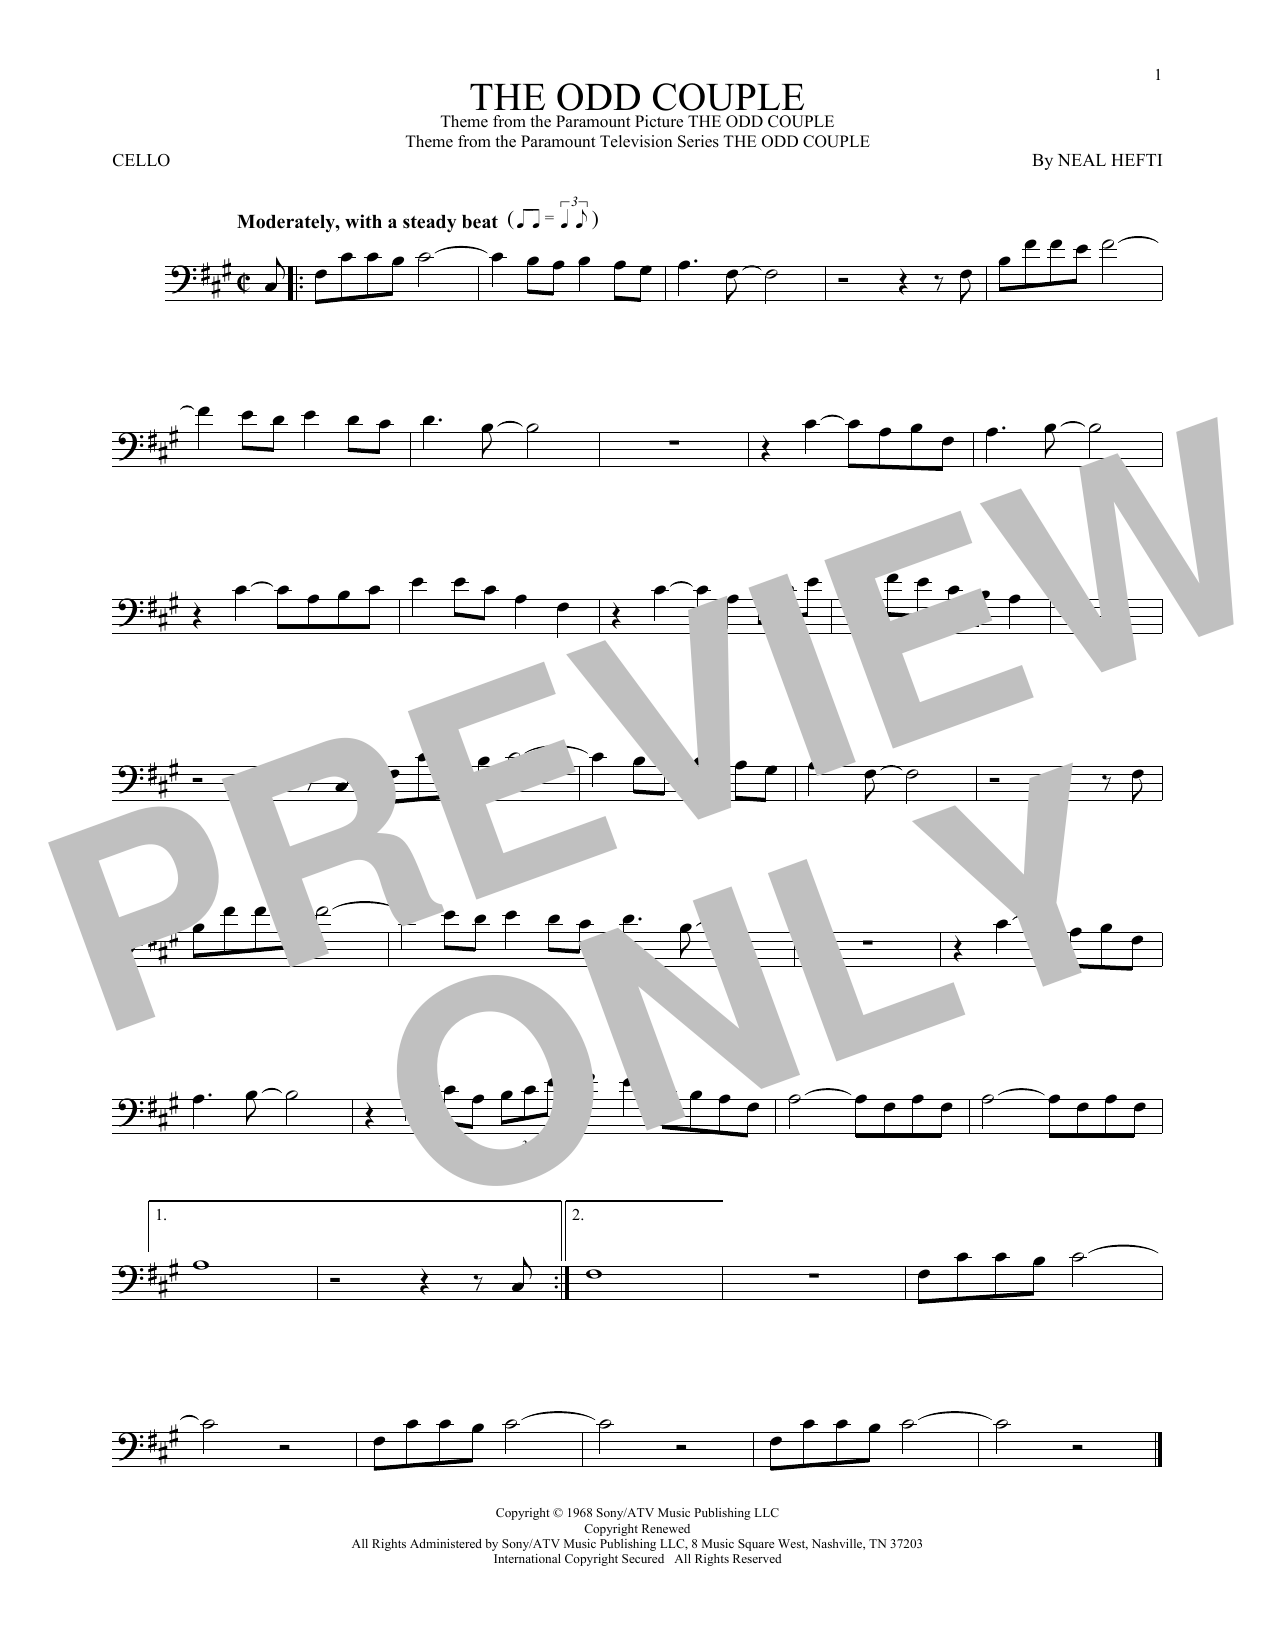 Sammy Cahn The Odd Couple sheet music notes and chords. Download Printable PDF.